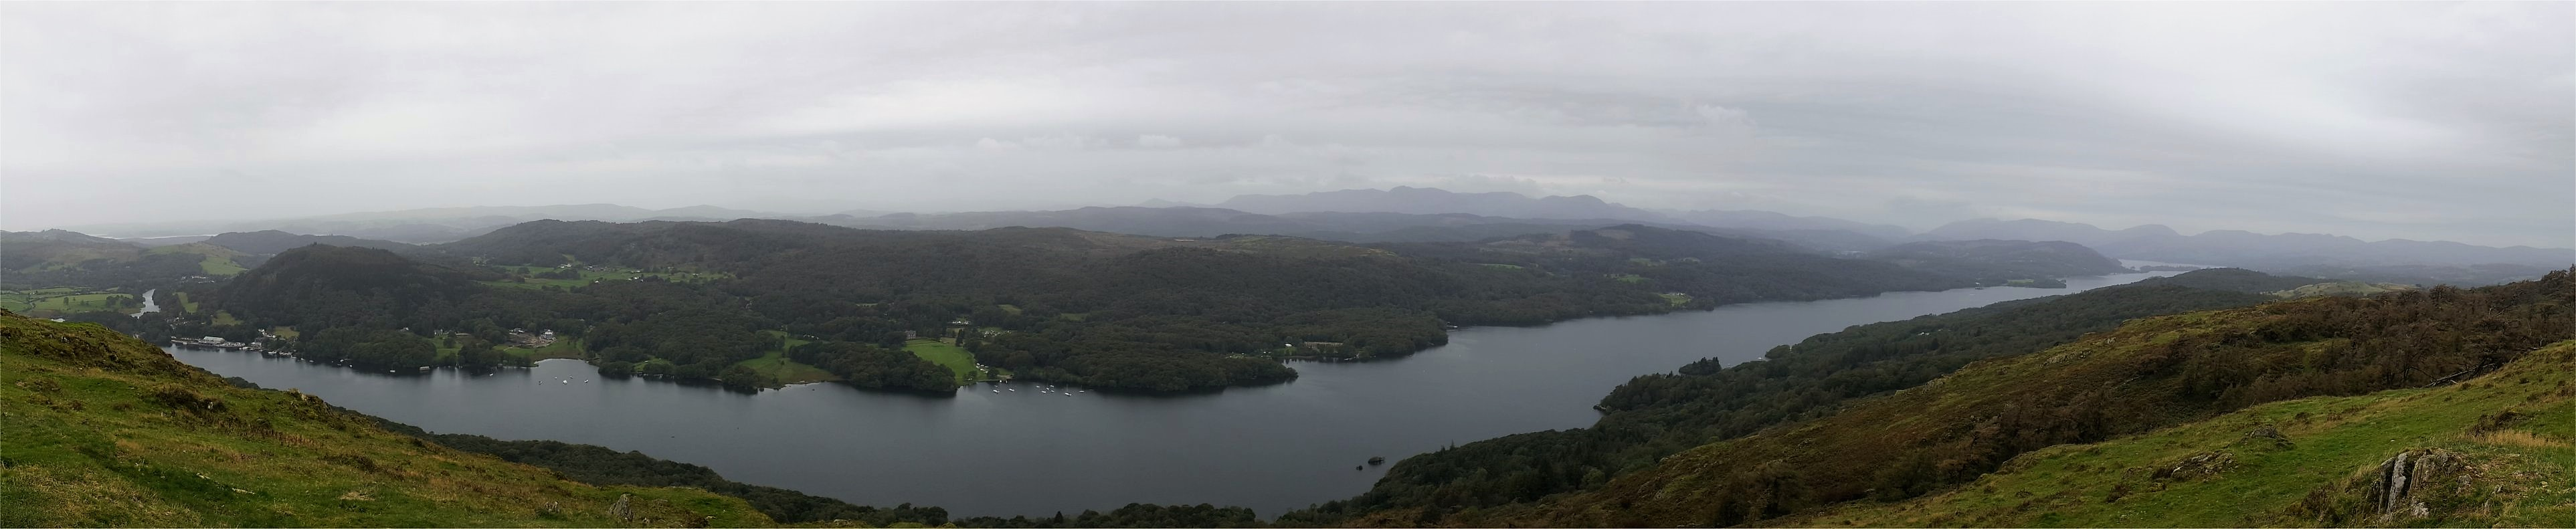 windermere from gummers how.jpg